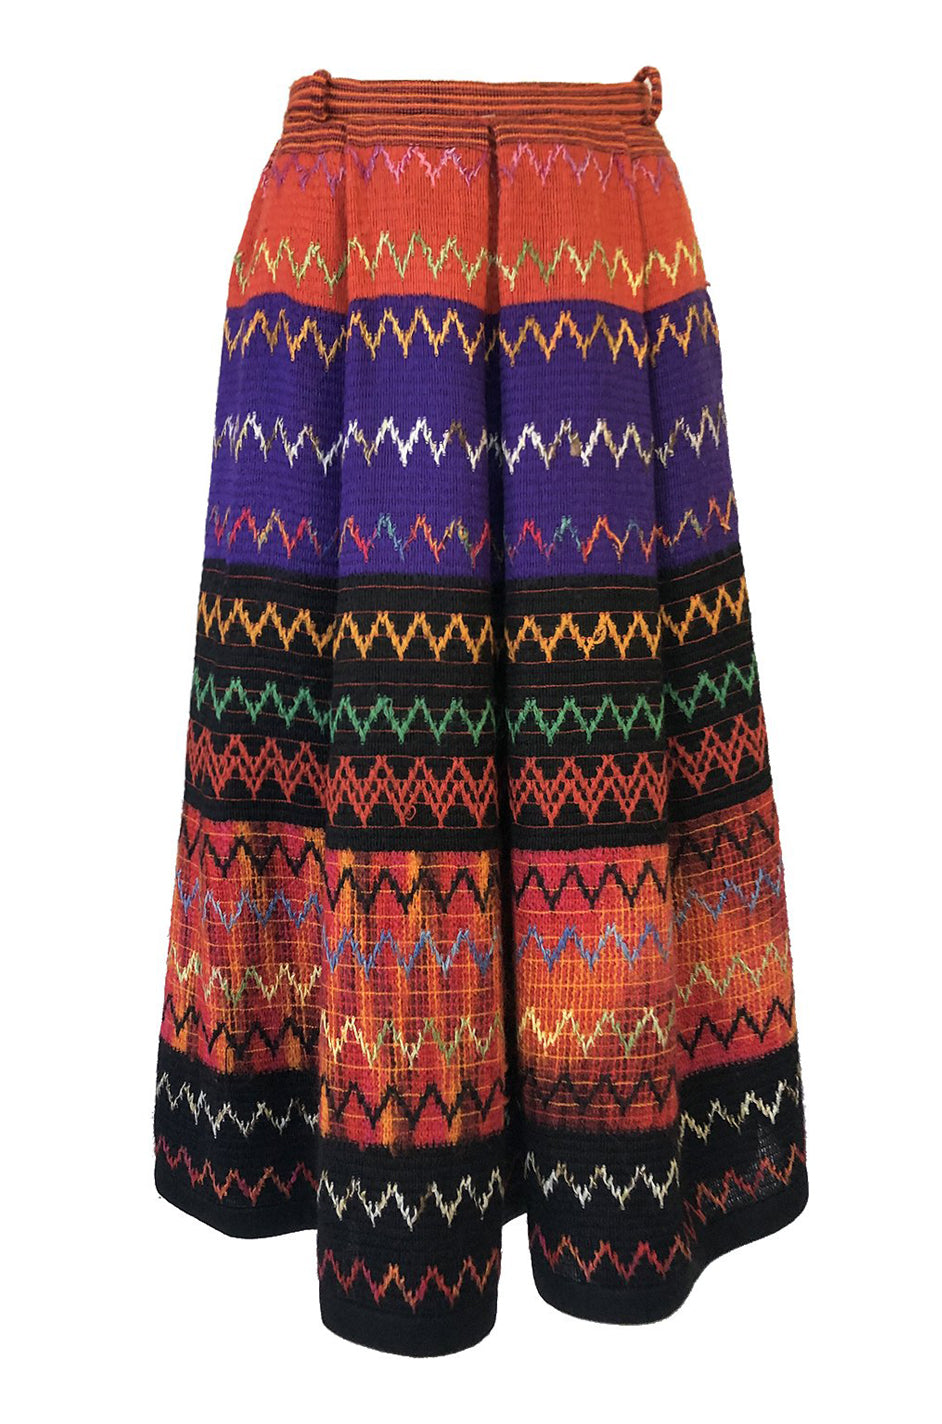 95b1650594 1970s Lanvin Numbered Haute Couture Hand Woven Knit Embroidery Skirt